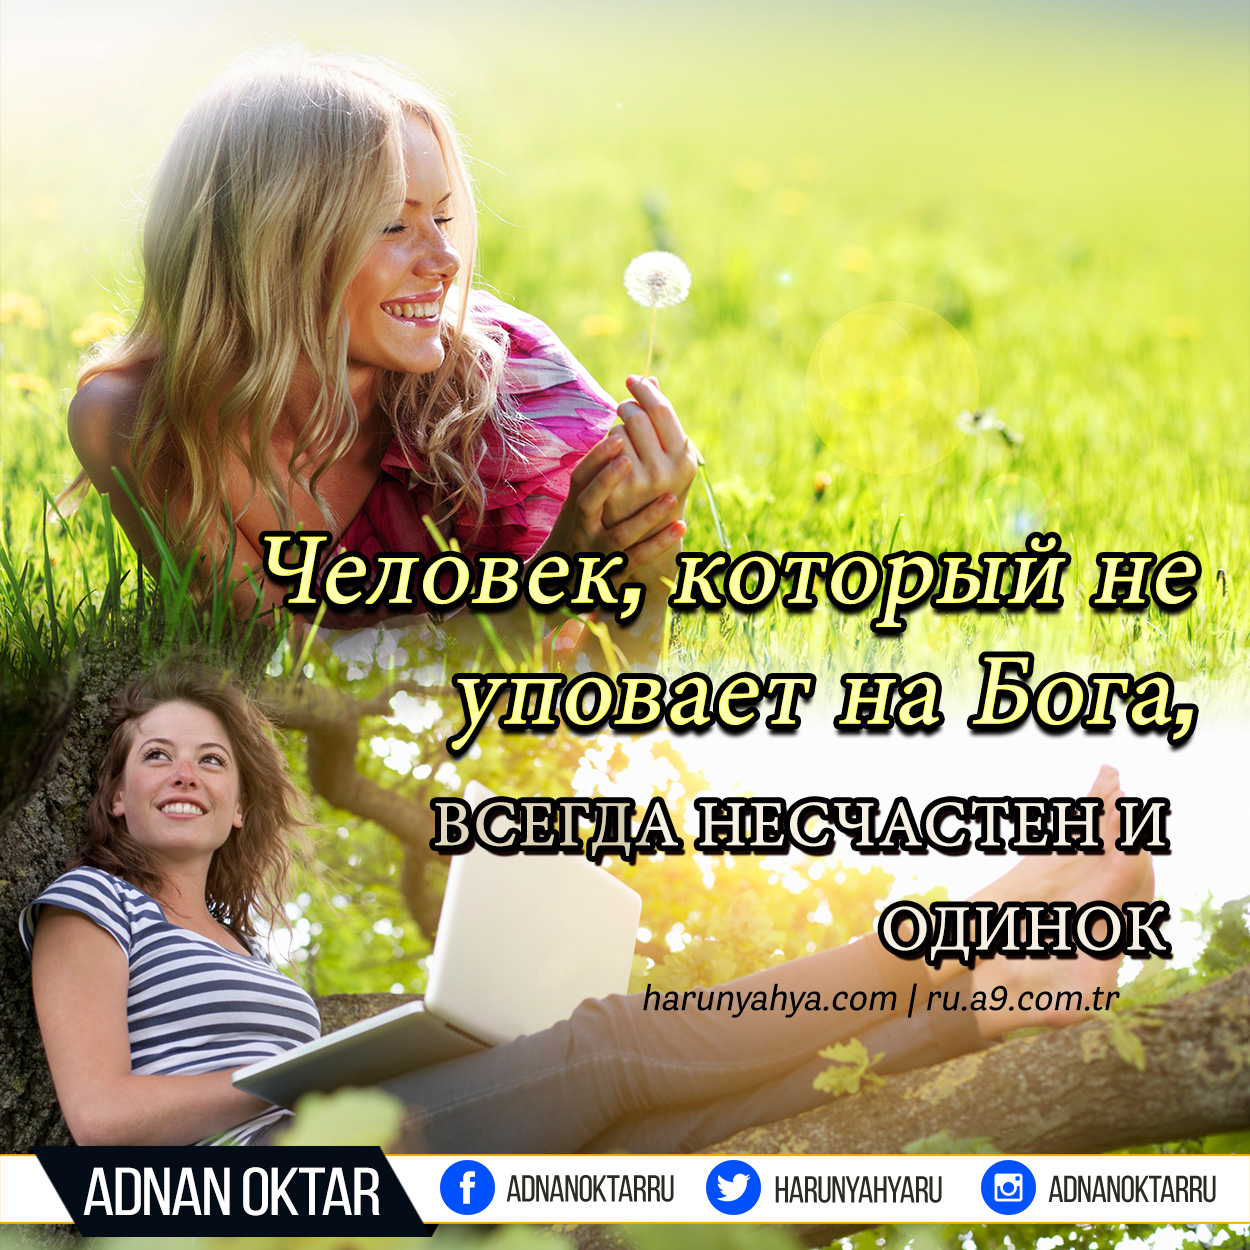 """<table style=""""width: 100%;""""><tr><td style=""""vertical-align: middle;"""">Человек, который не уповает на Бога, всегда несчастен и одинок</td><td style=""""max-width: 70px;vertical-align: middle;""""> <a href=""""/downloadquote.php?filename=1490773002187.jpg""""><img class=""""hoversaturate"""" height=""""20px"""" src=""""/assets/images/download-iconu.png"""" style=""""width: 48px; height: 48px;"""" title=""""Download Image""""/></a></td></tr></table>"""